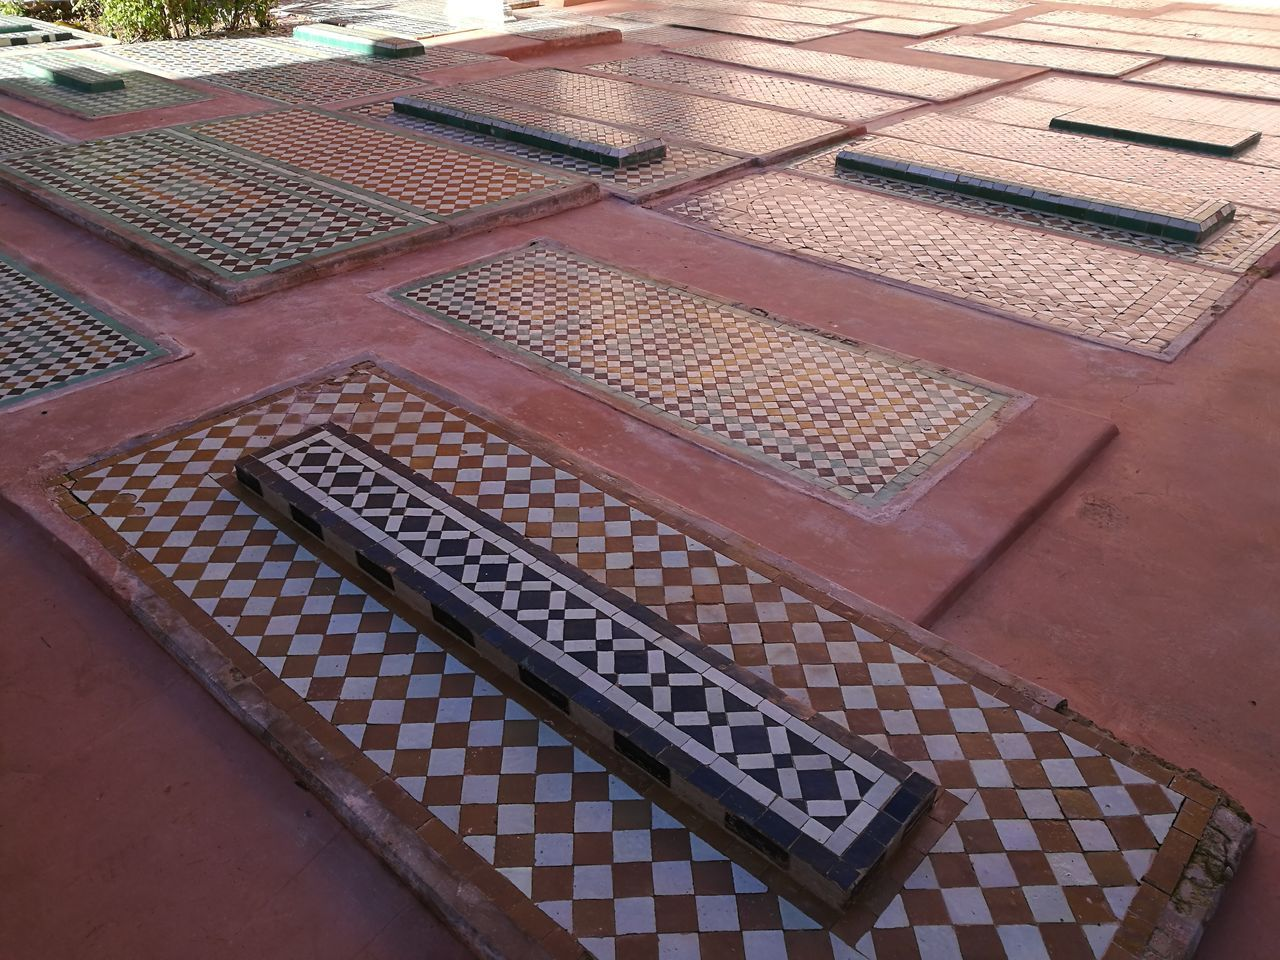 mausoleum Saadian Tombs Marrakesh Architecture Graveyard Marocco Mausoleum Mosaic Saadian Tombs Tombs Tourist Attraction  Travel Destinations